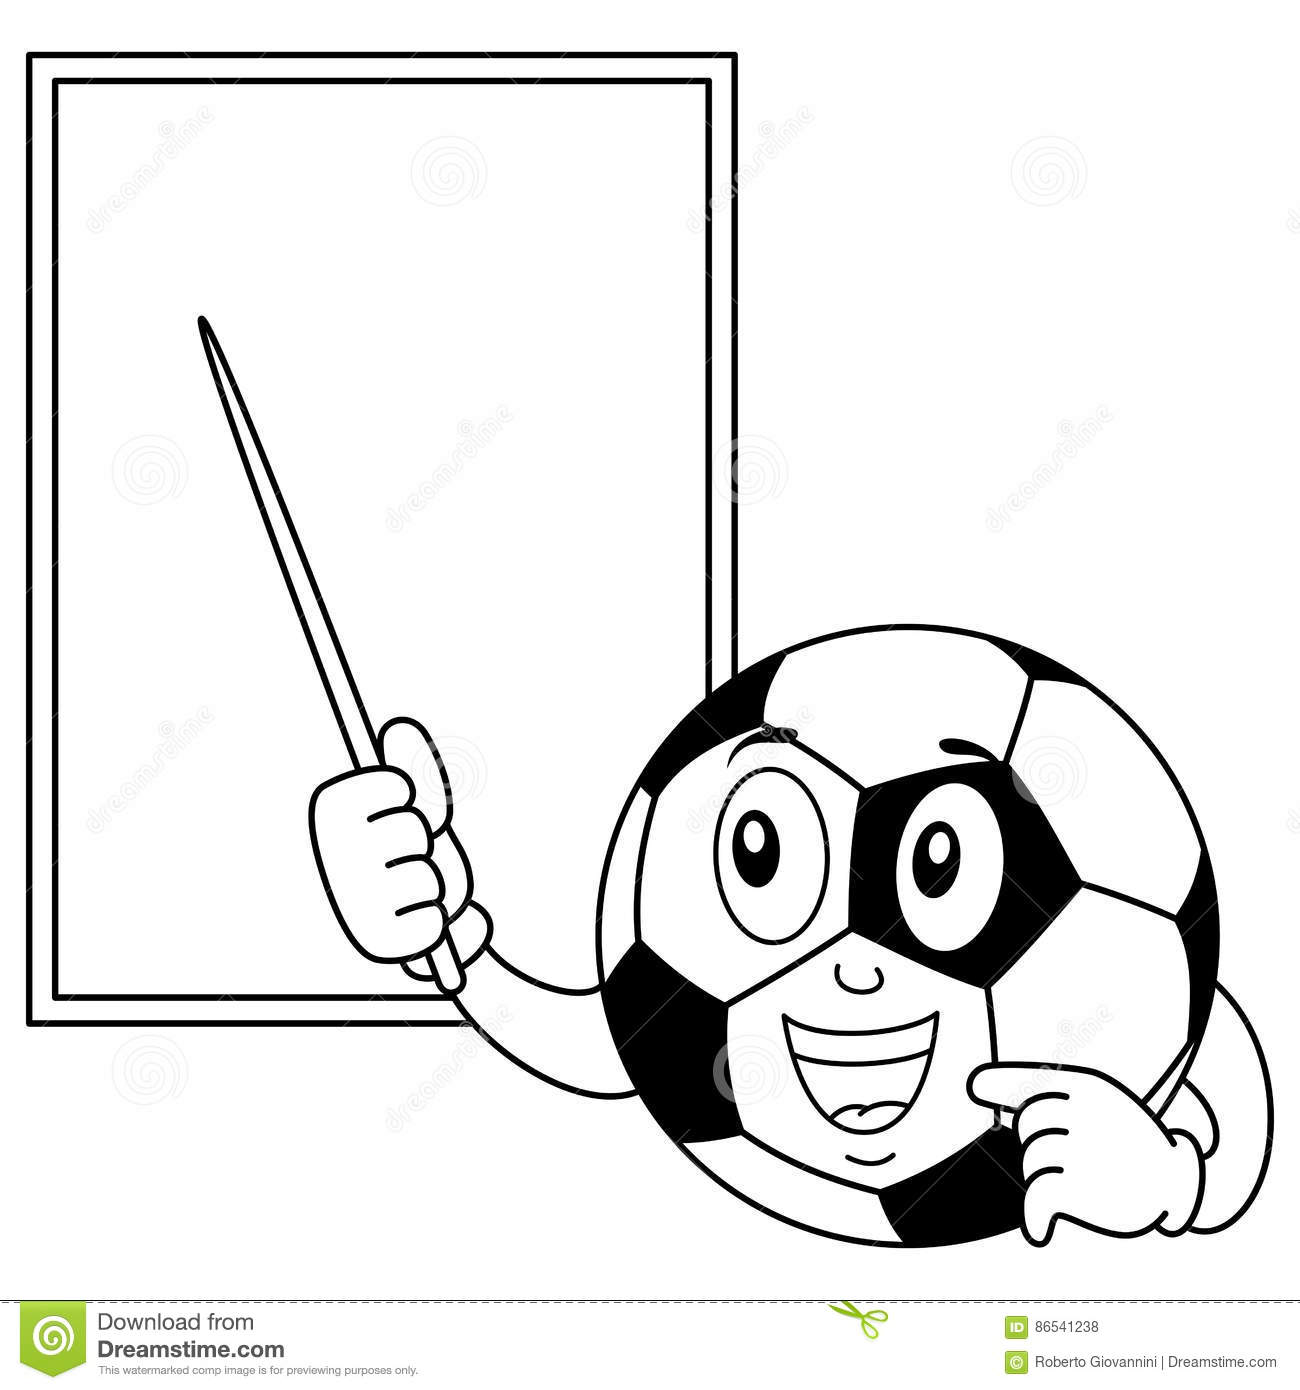 Coloring Soccer Ball And White Board Stock Vector - Illustration of ...